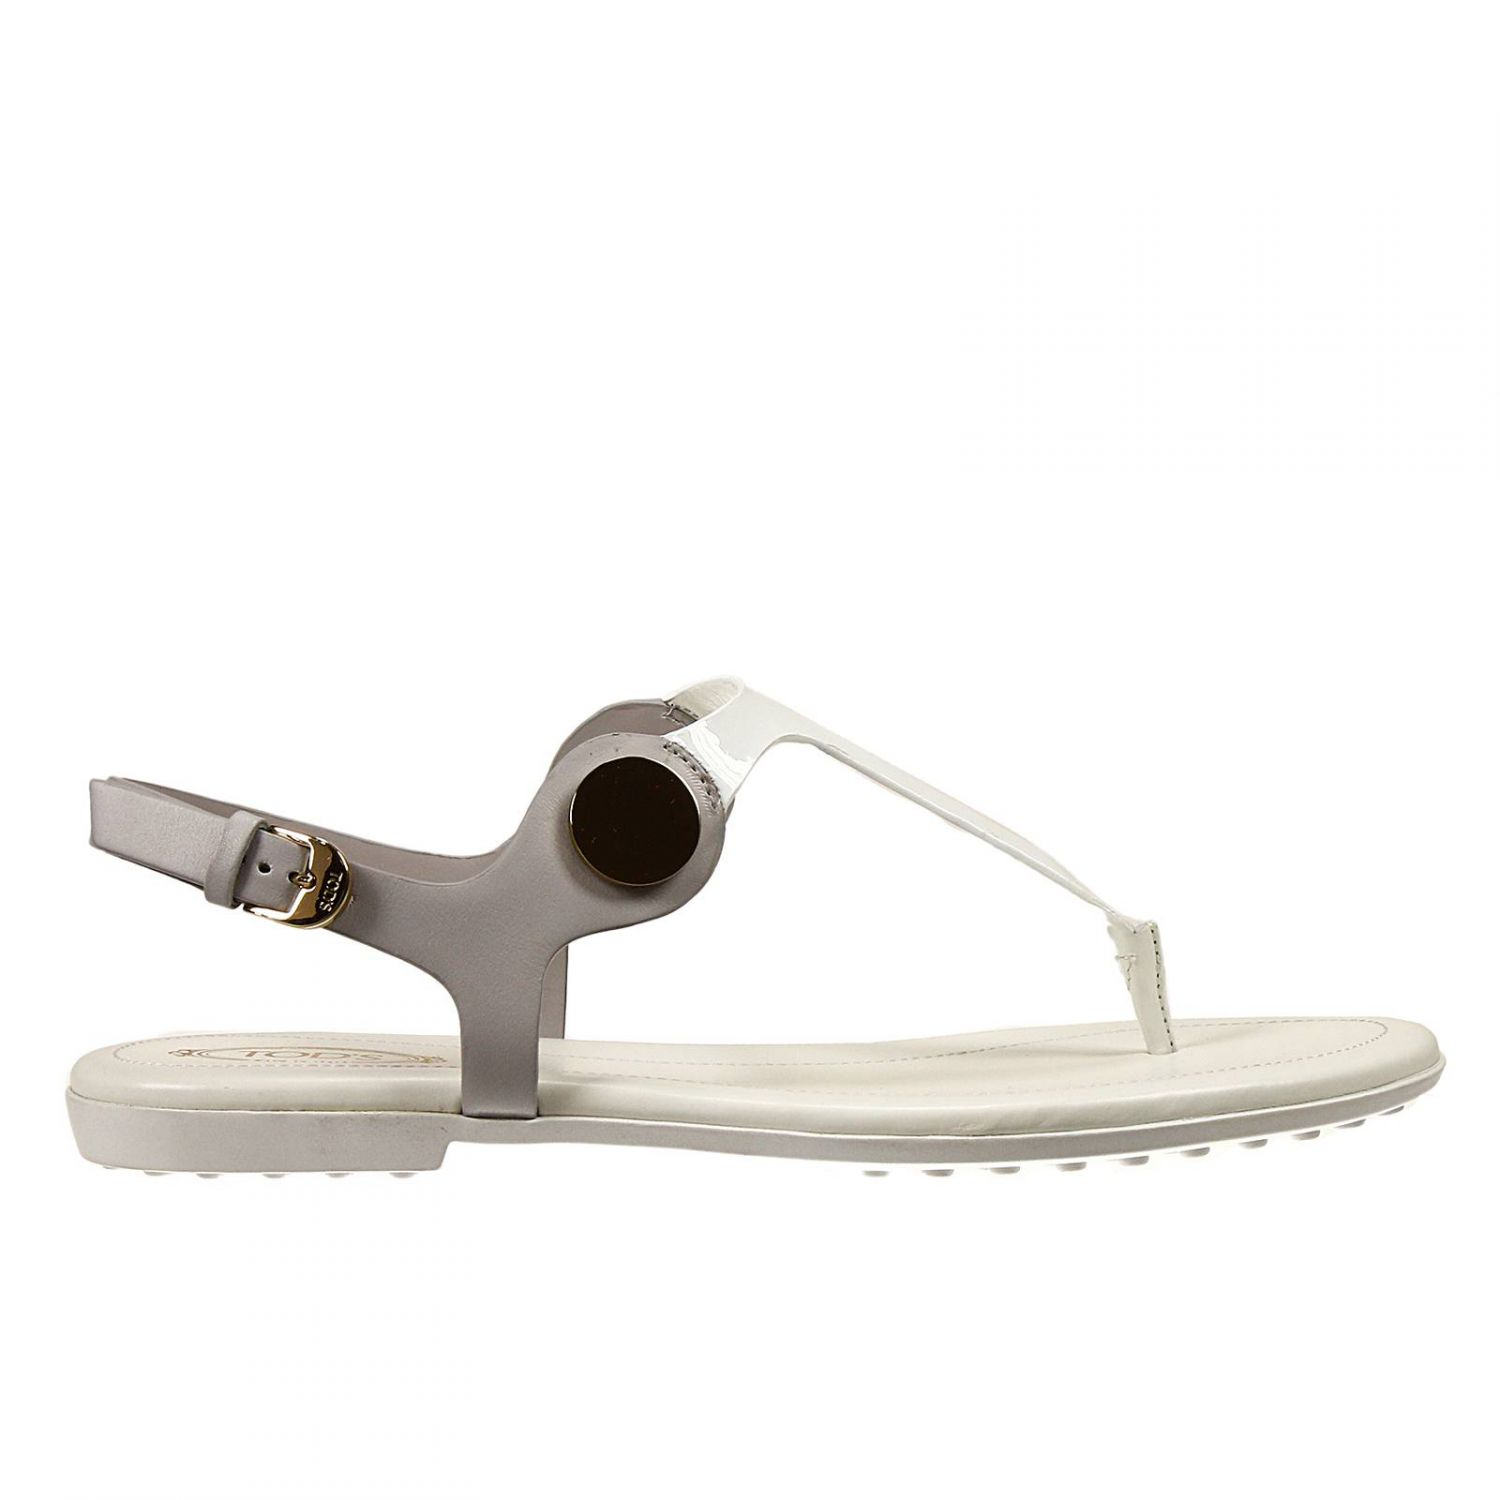 sale store Tod's Patent Leather Thong Sandals comfortable cheap online discount pay with visa buy cheap fashion Style pictures for sale wfiaboTKLb